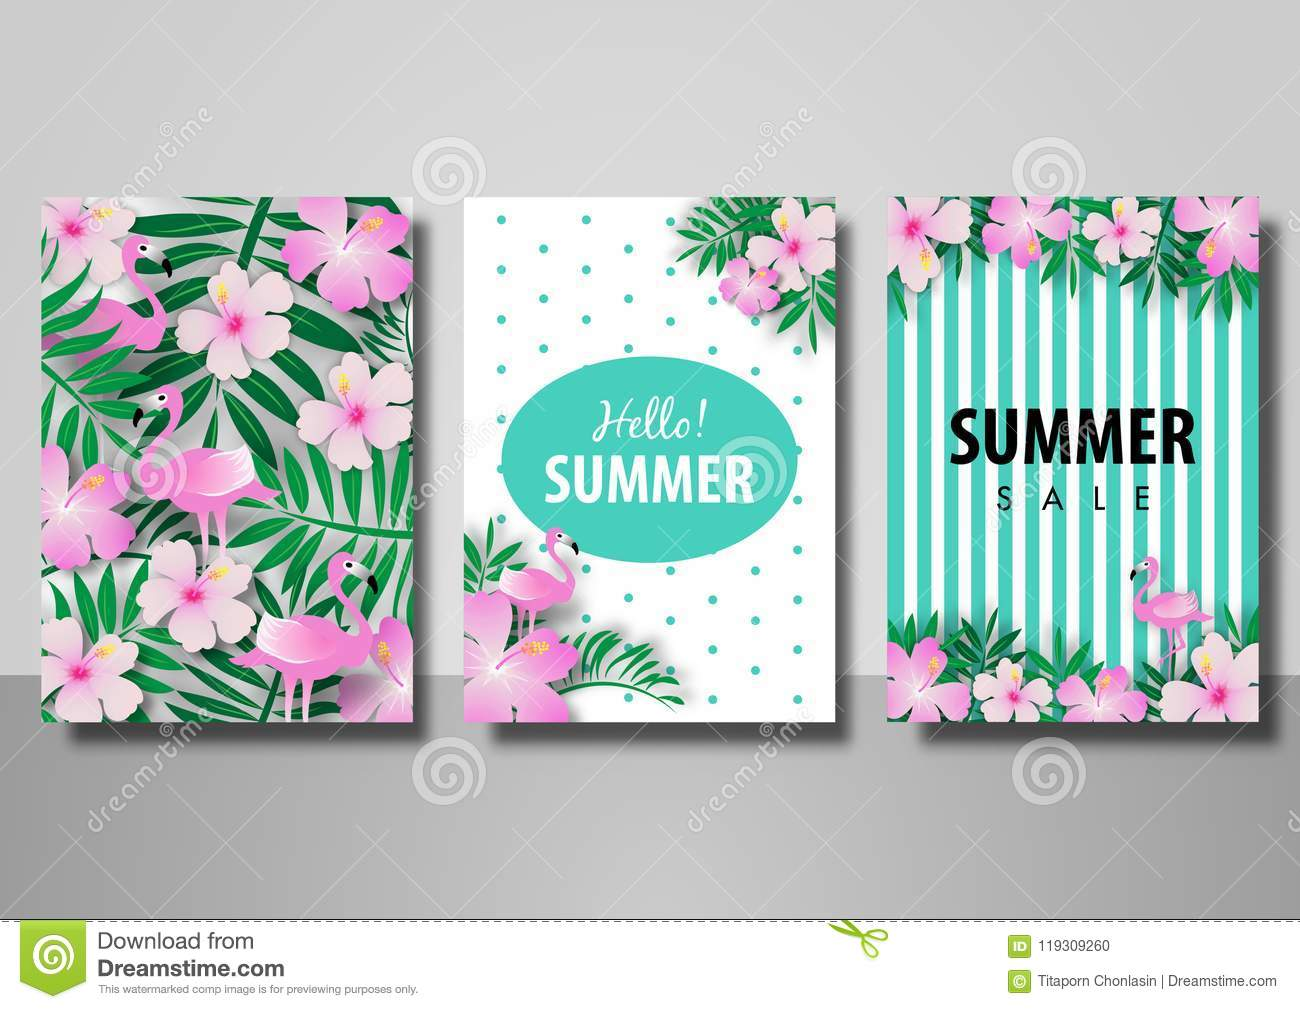 Summer sale background set vector illustration template with flamingo bird and palm leave